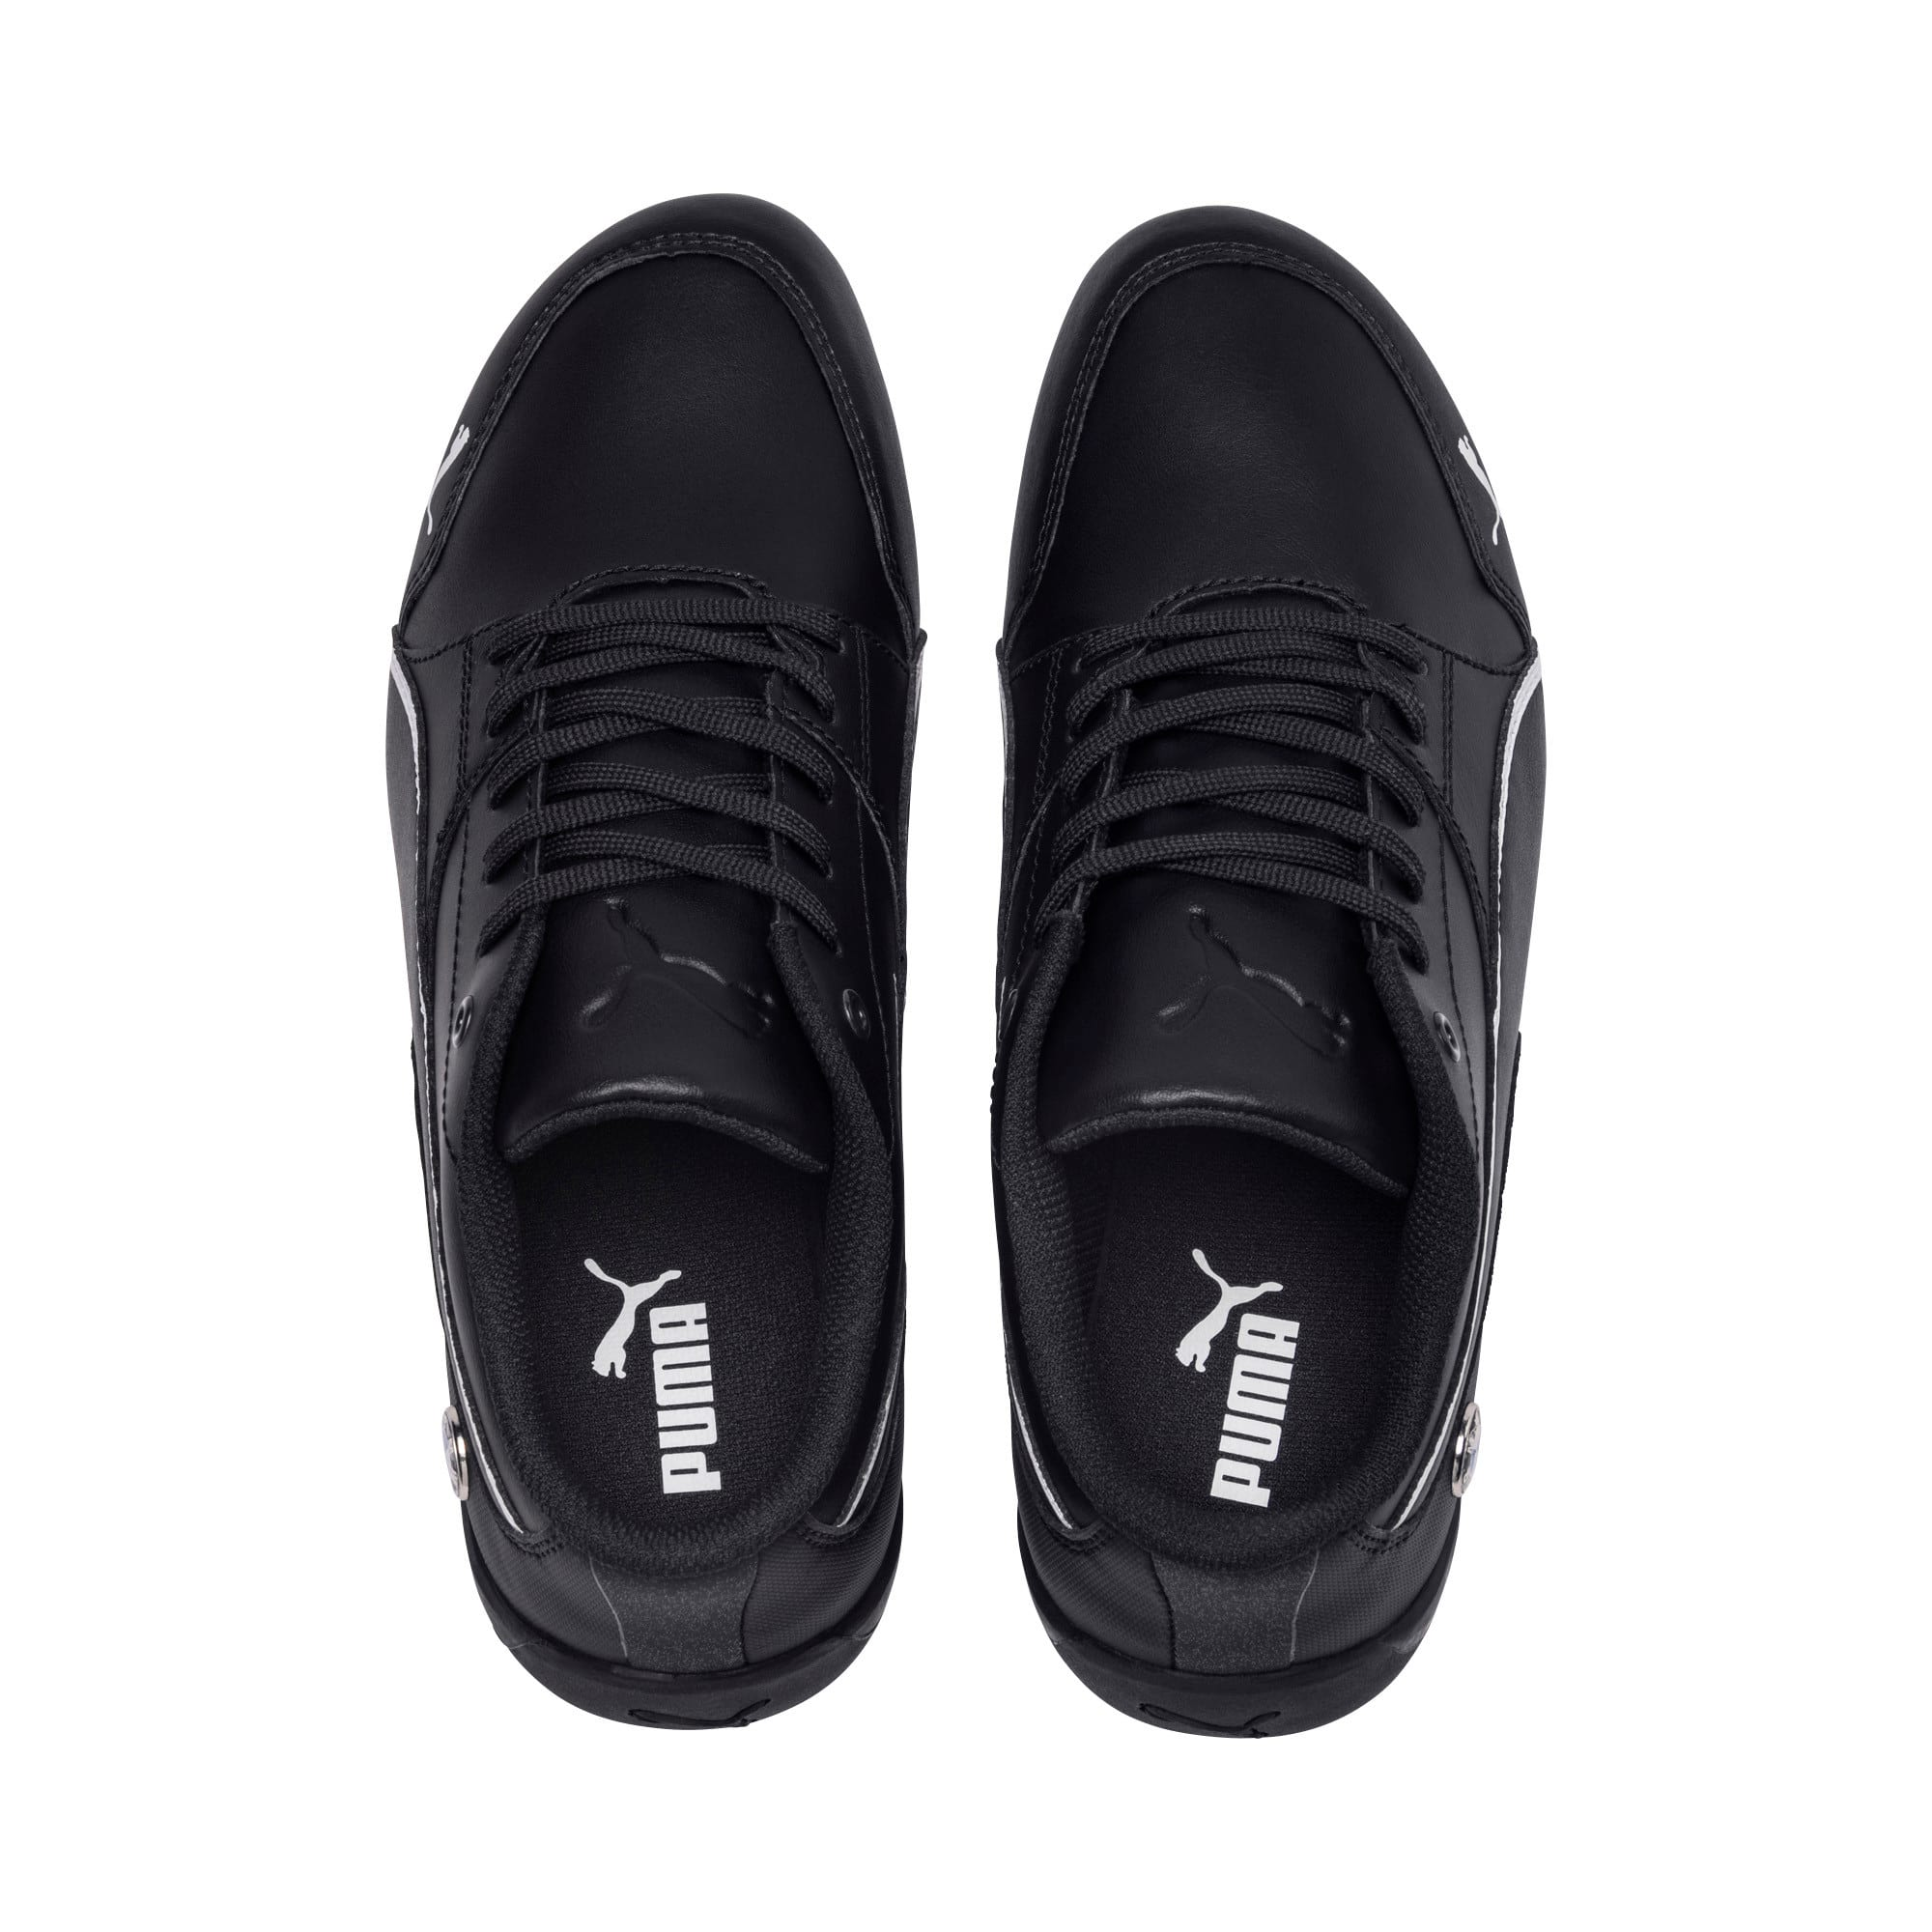 Thumbnail 6 of BMW Motorsport Drift Cat 7 Kids' Trainers, Anthracite-Anthracite, medium-IND